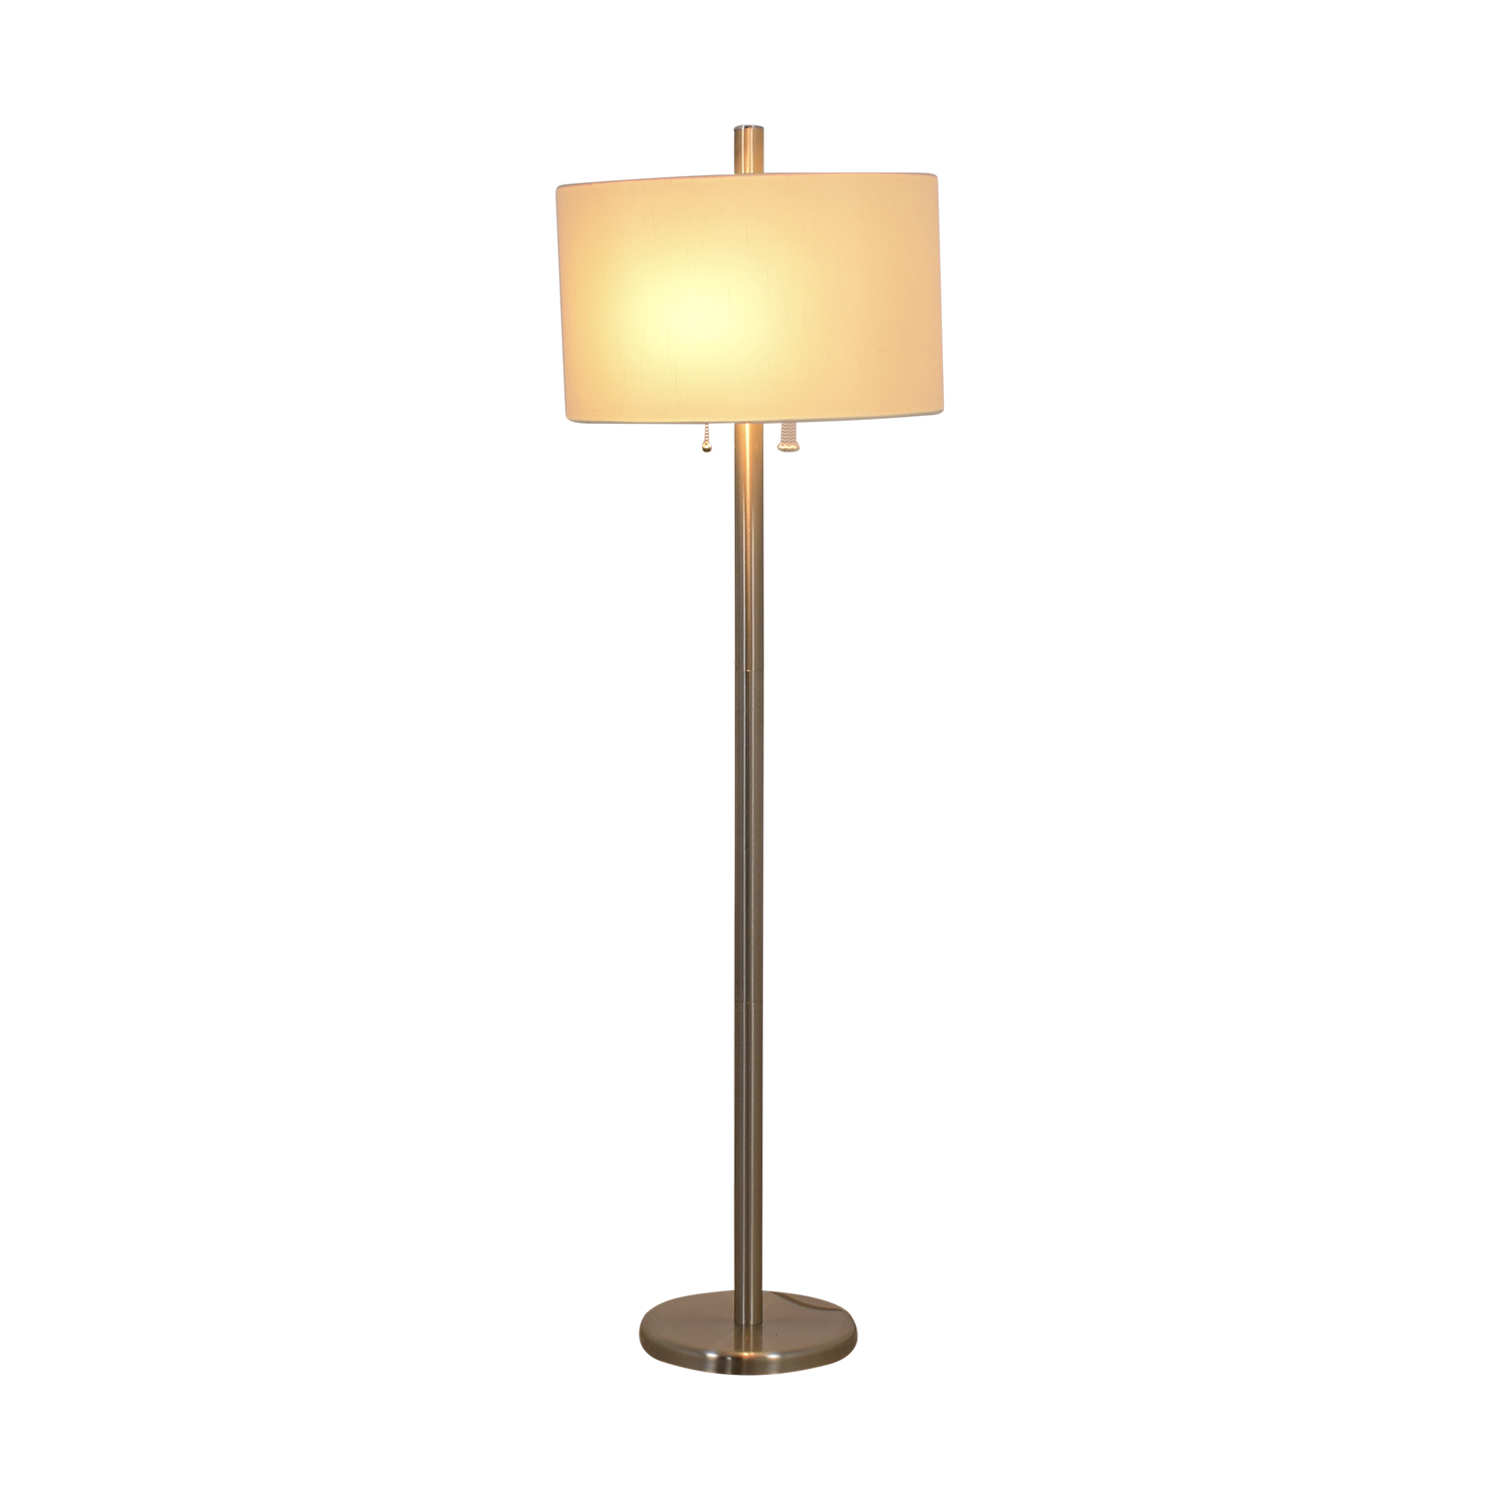 Adesso Adesso Boulevard Satin Steel Floor Lamp nyc